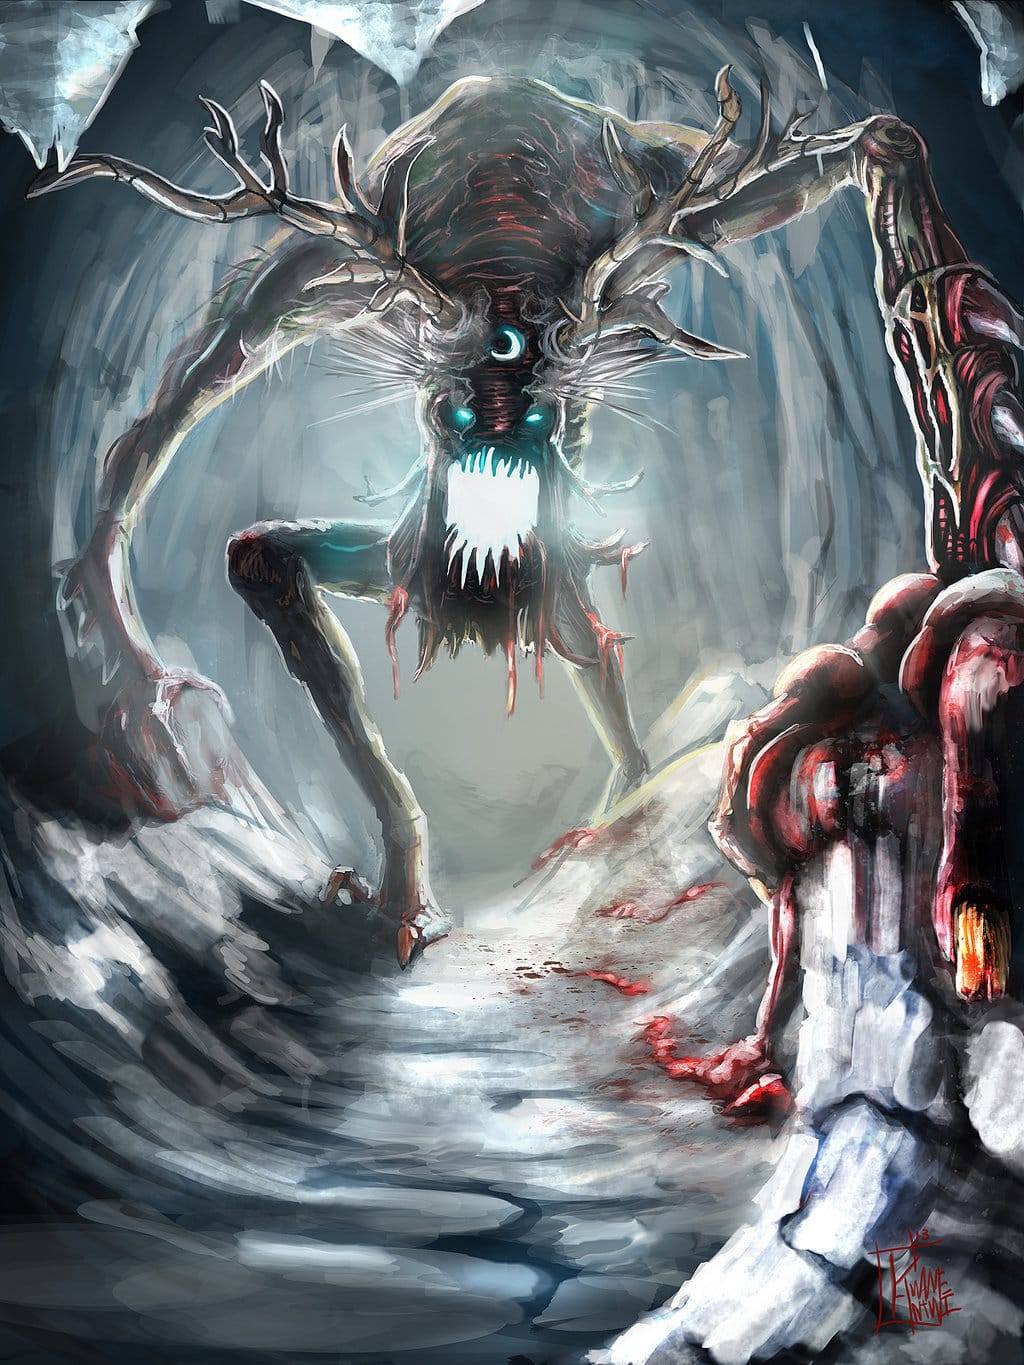 Wendigo, The Mythical Creature, The Legend and Its Origin